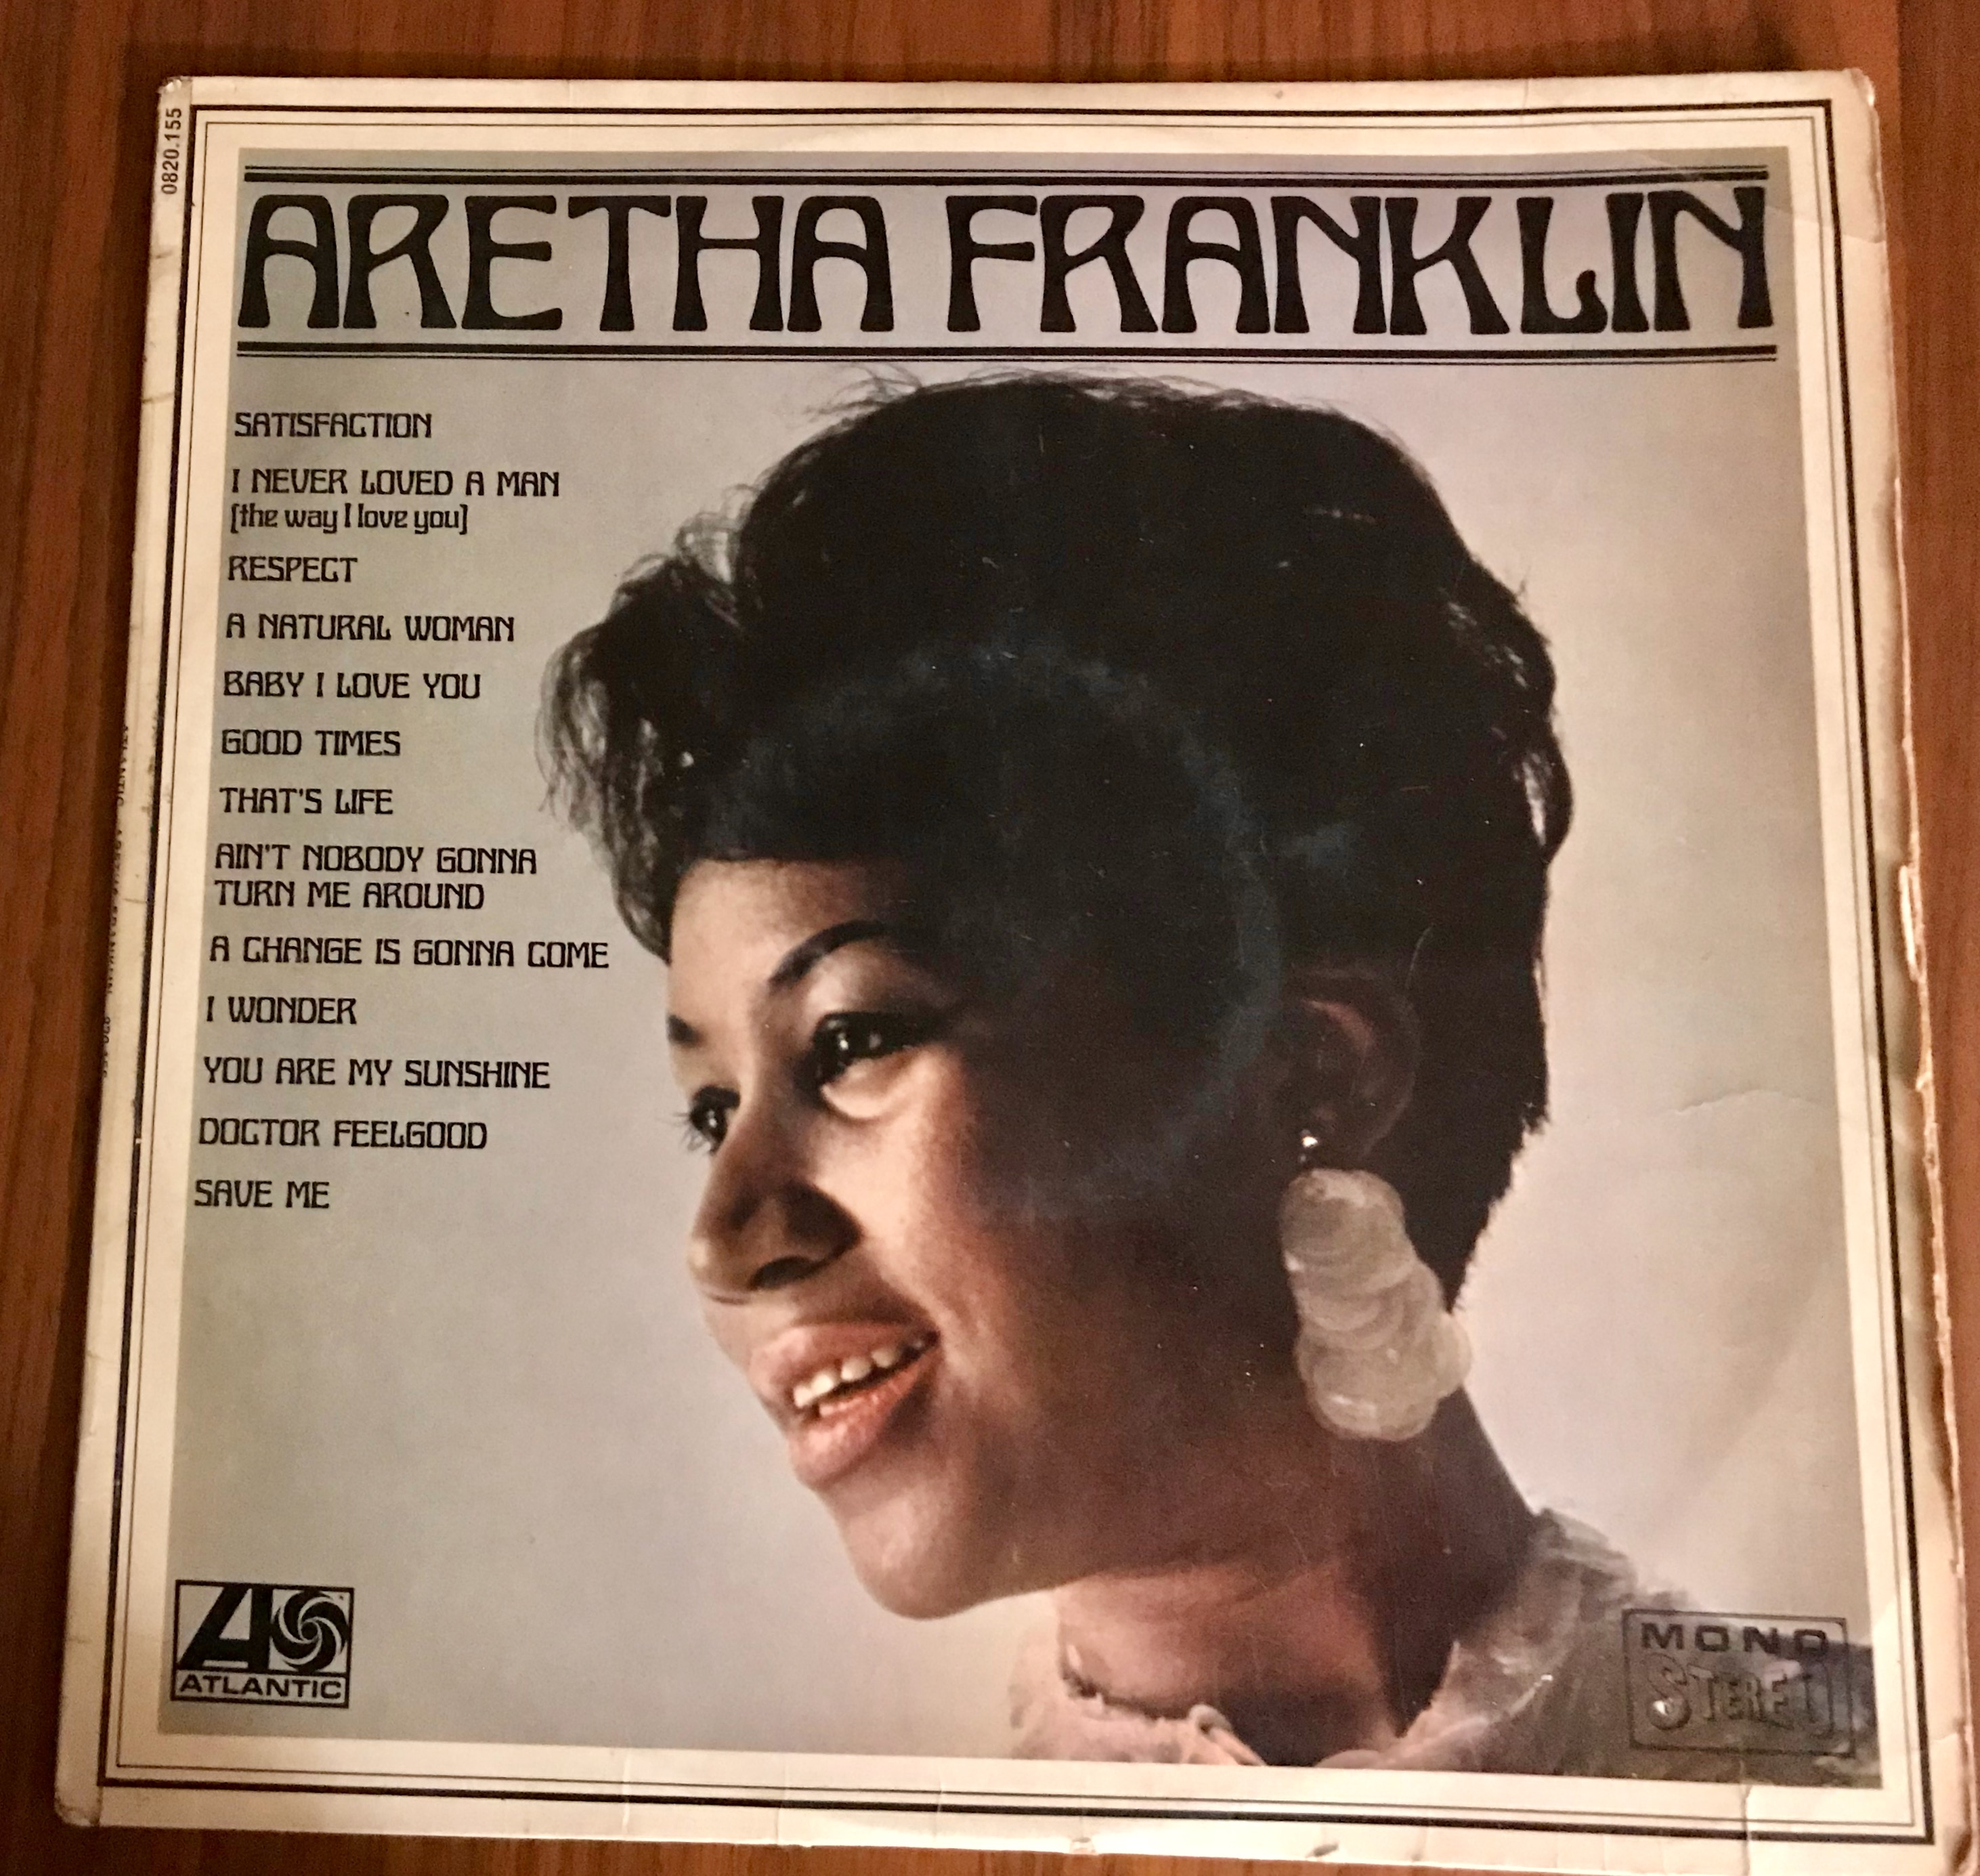 Disque vynile Aretha Franklin